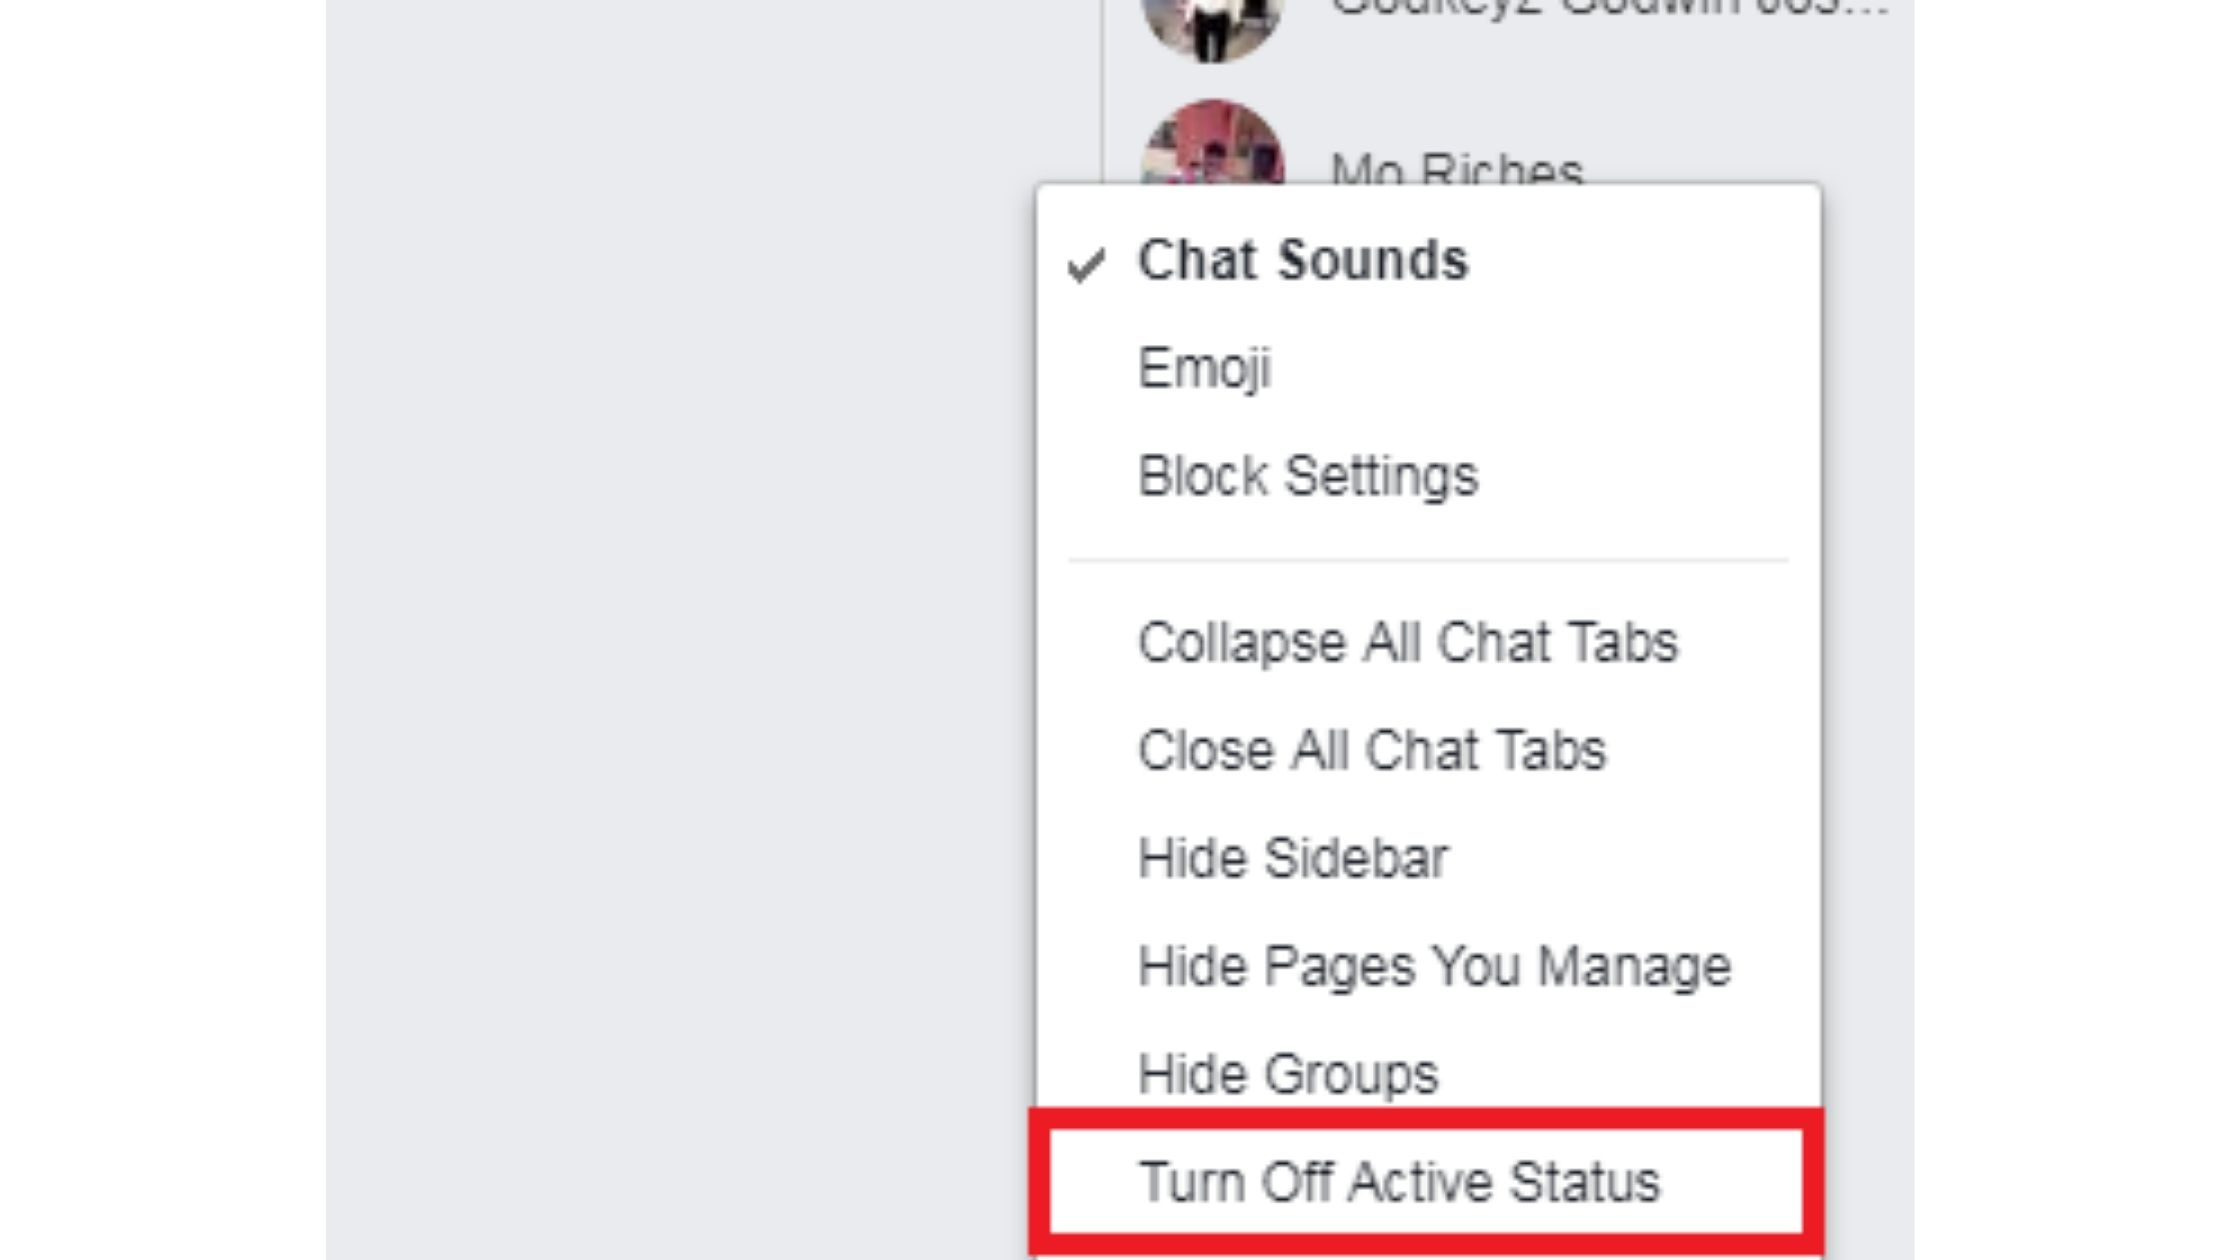 Go offline without logging out of Facebook